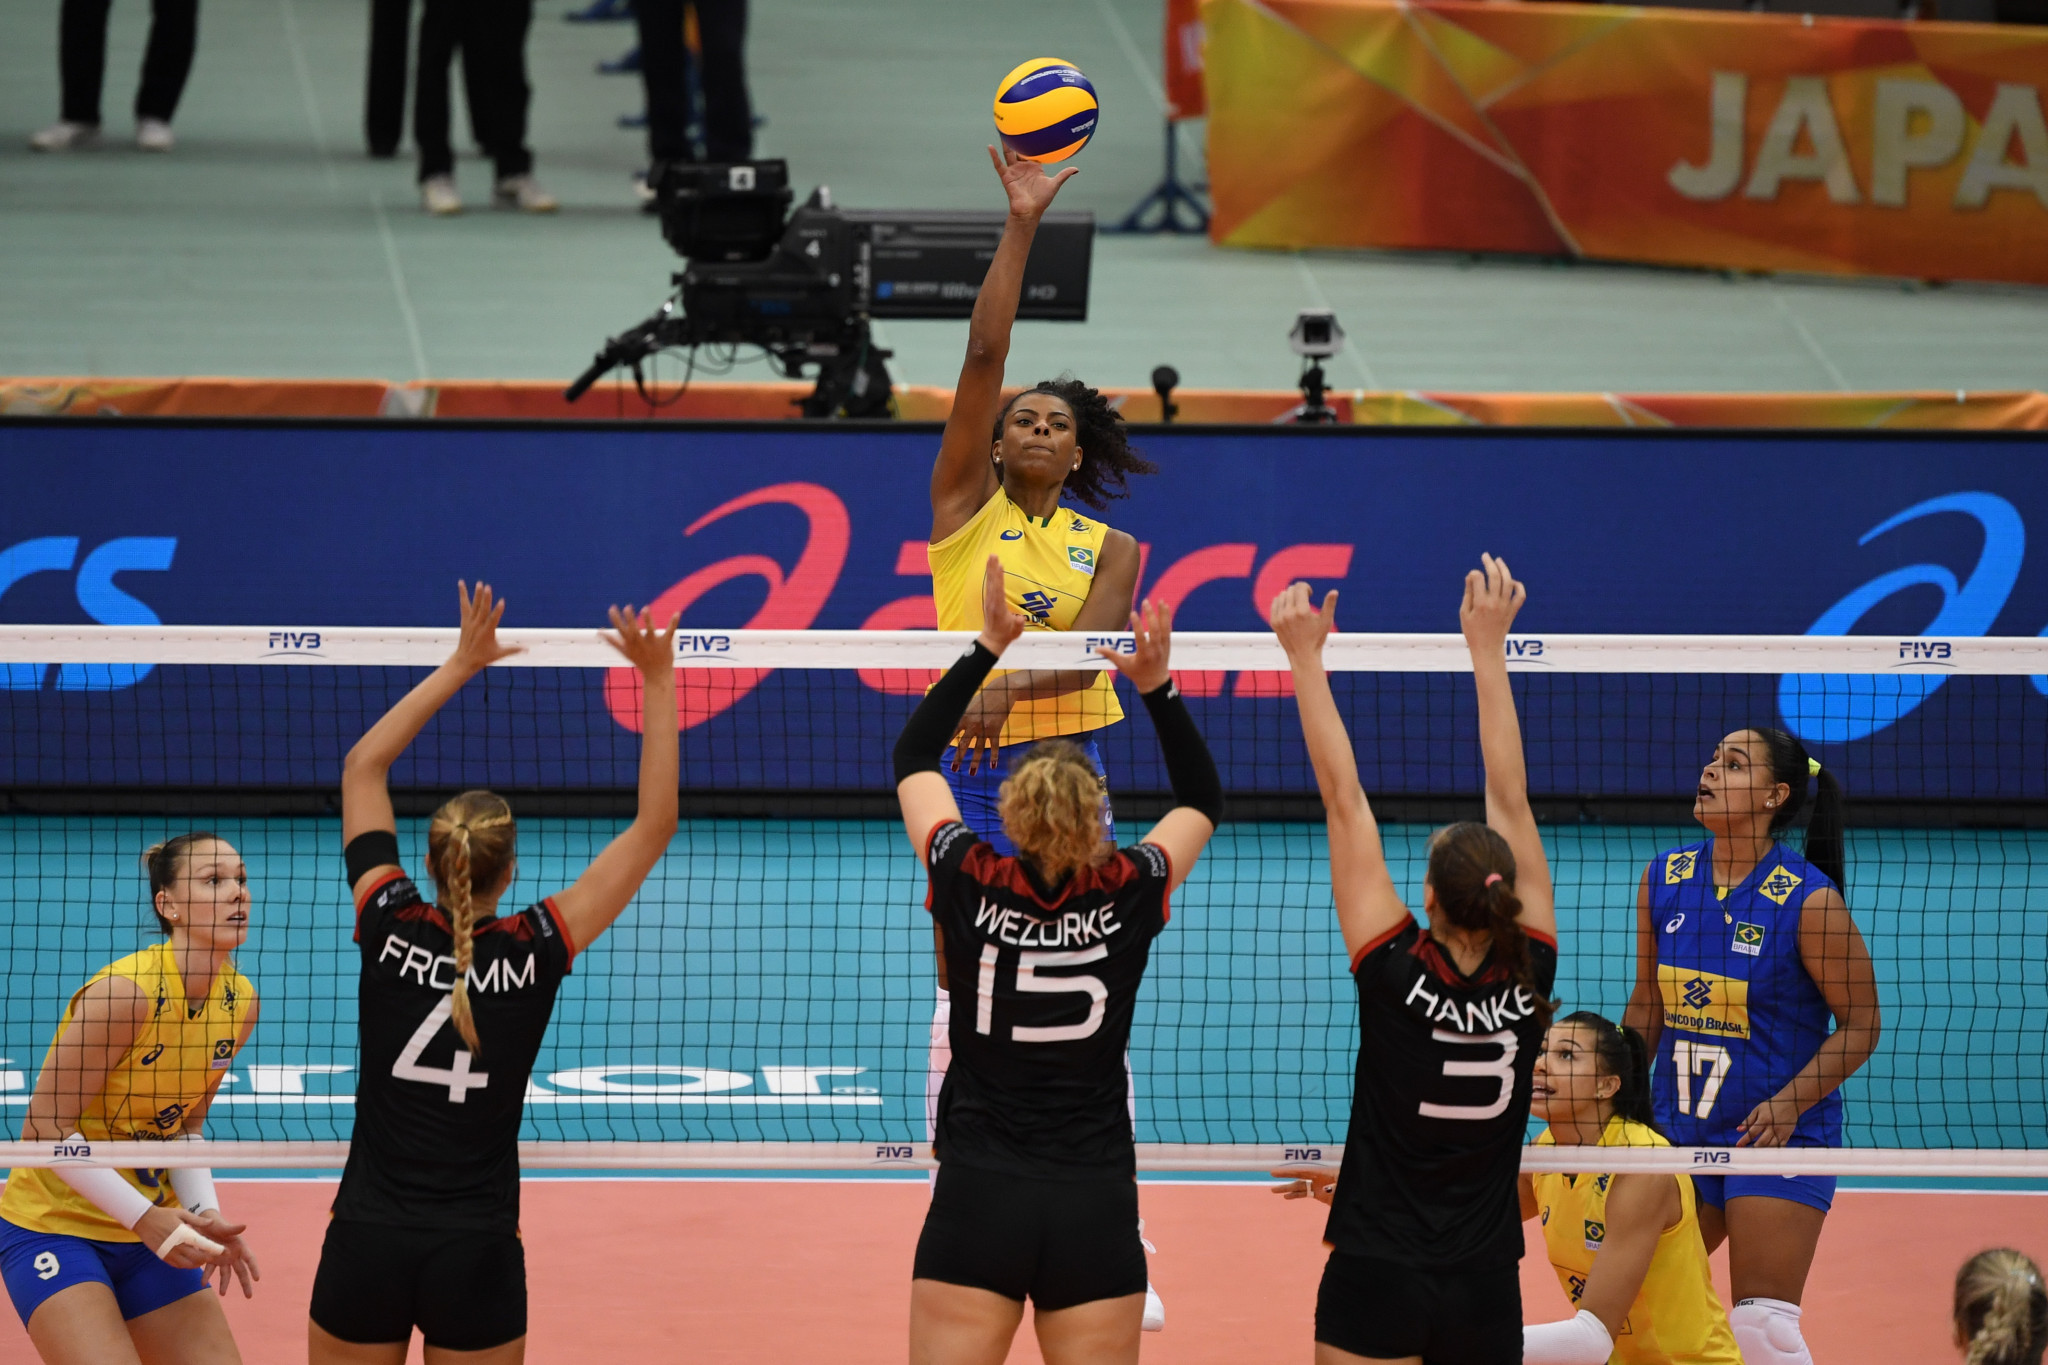 Both Germany and Brazil will be competing in their respective FIVB Intercontinental Olympic Qualification Tournaments to try and reach the Tokyo 2020 Olympic Games ©Getty Images